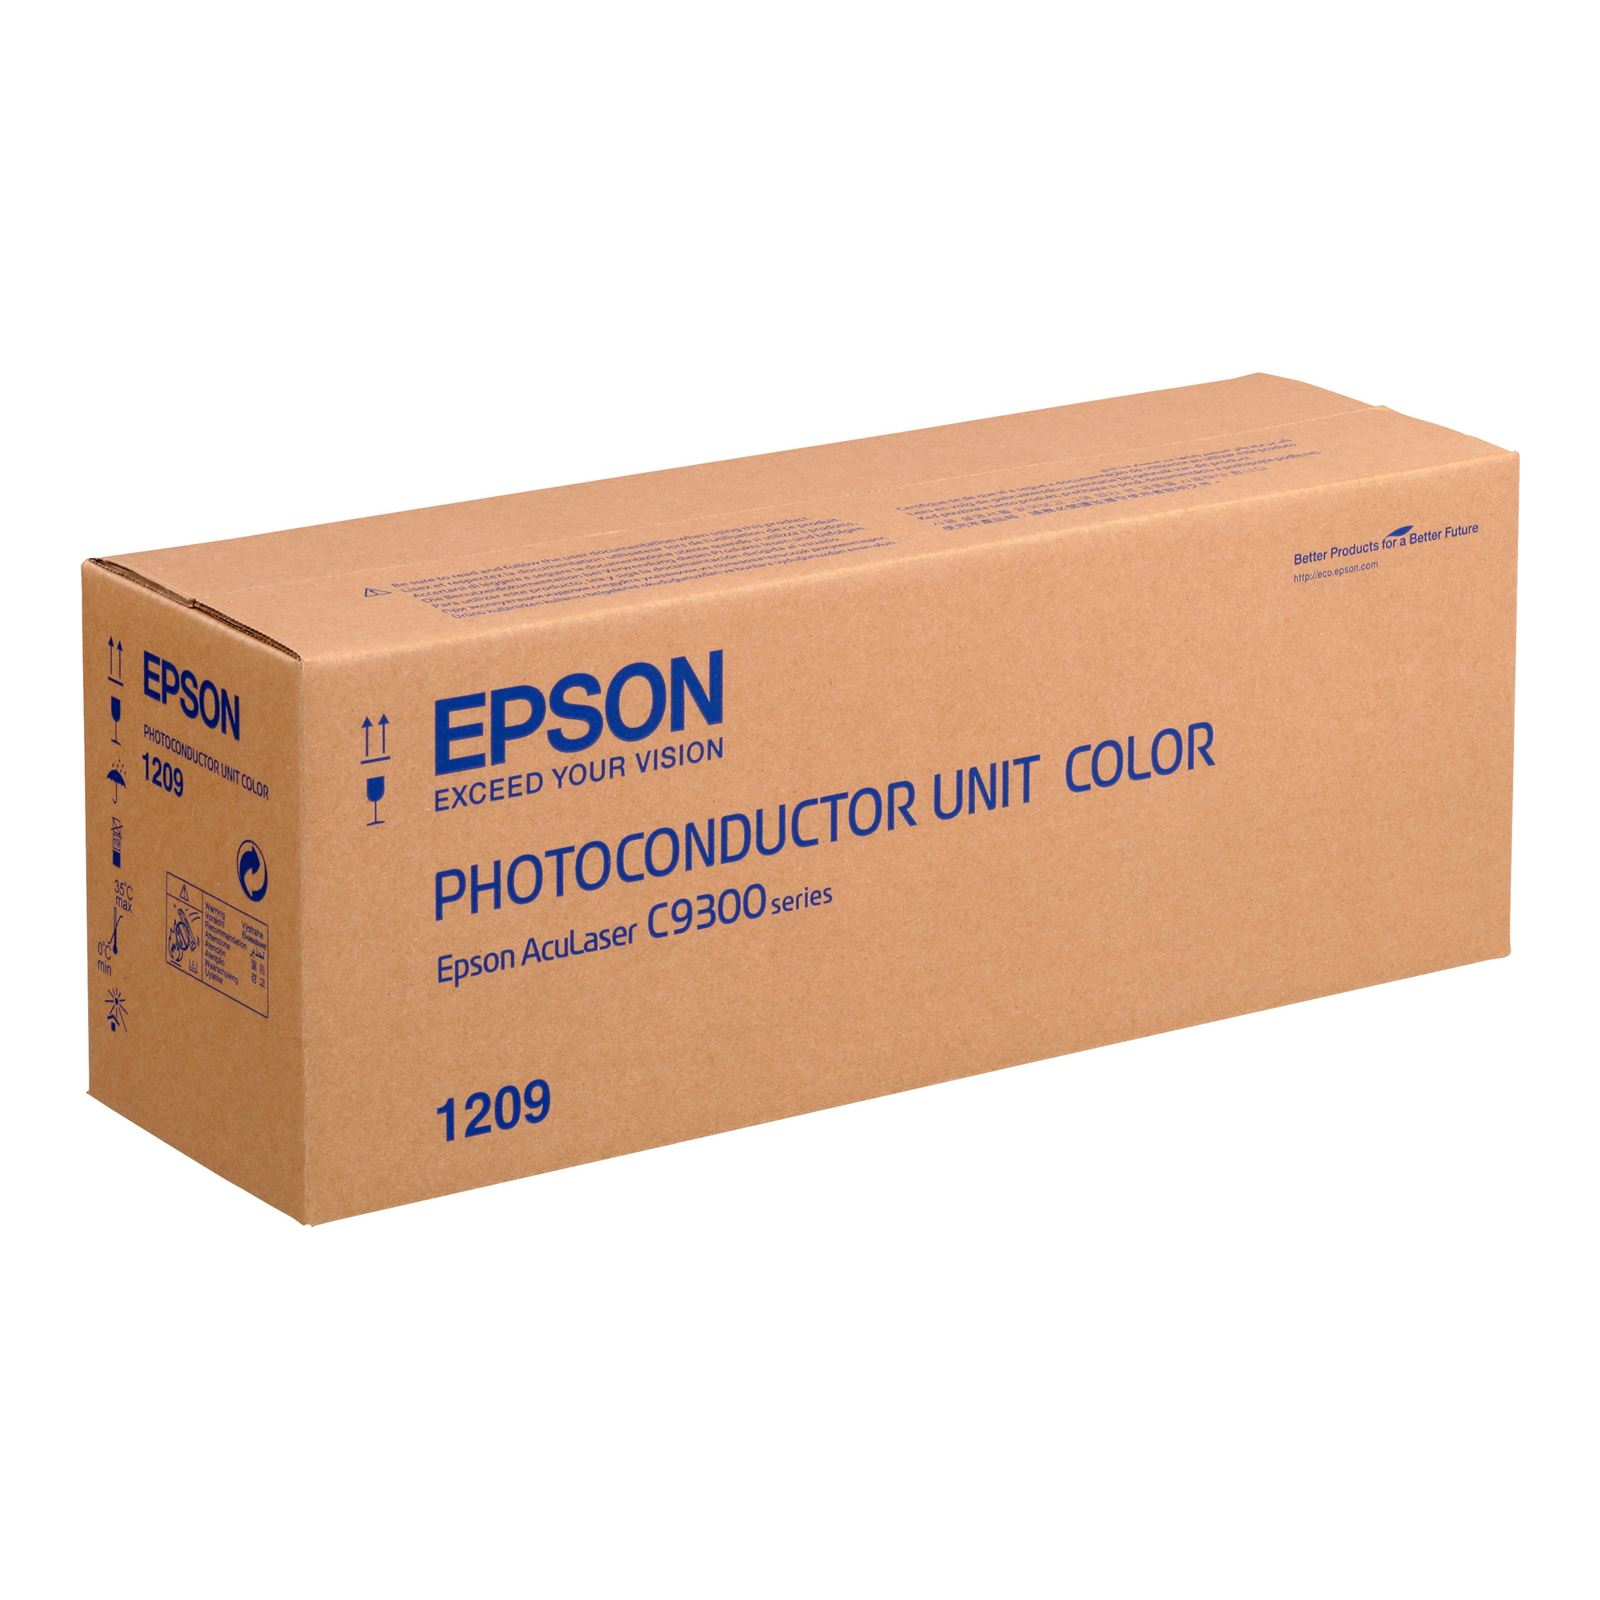 Epson C9300N Photoconductor Unit(CMY) 24K